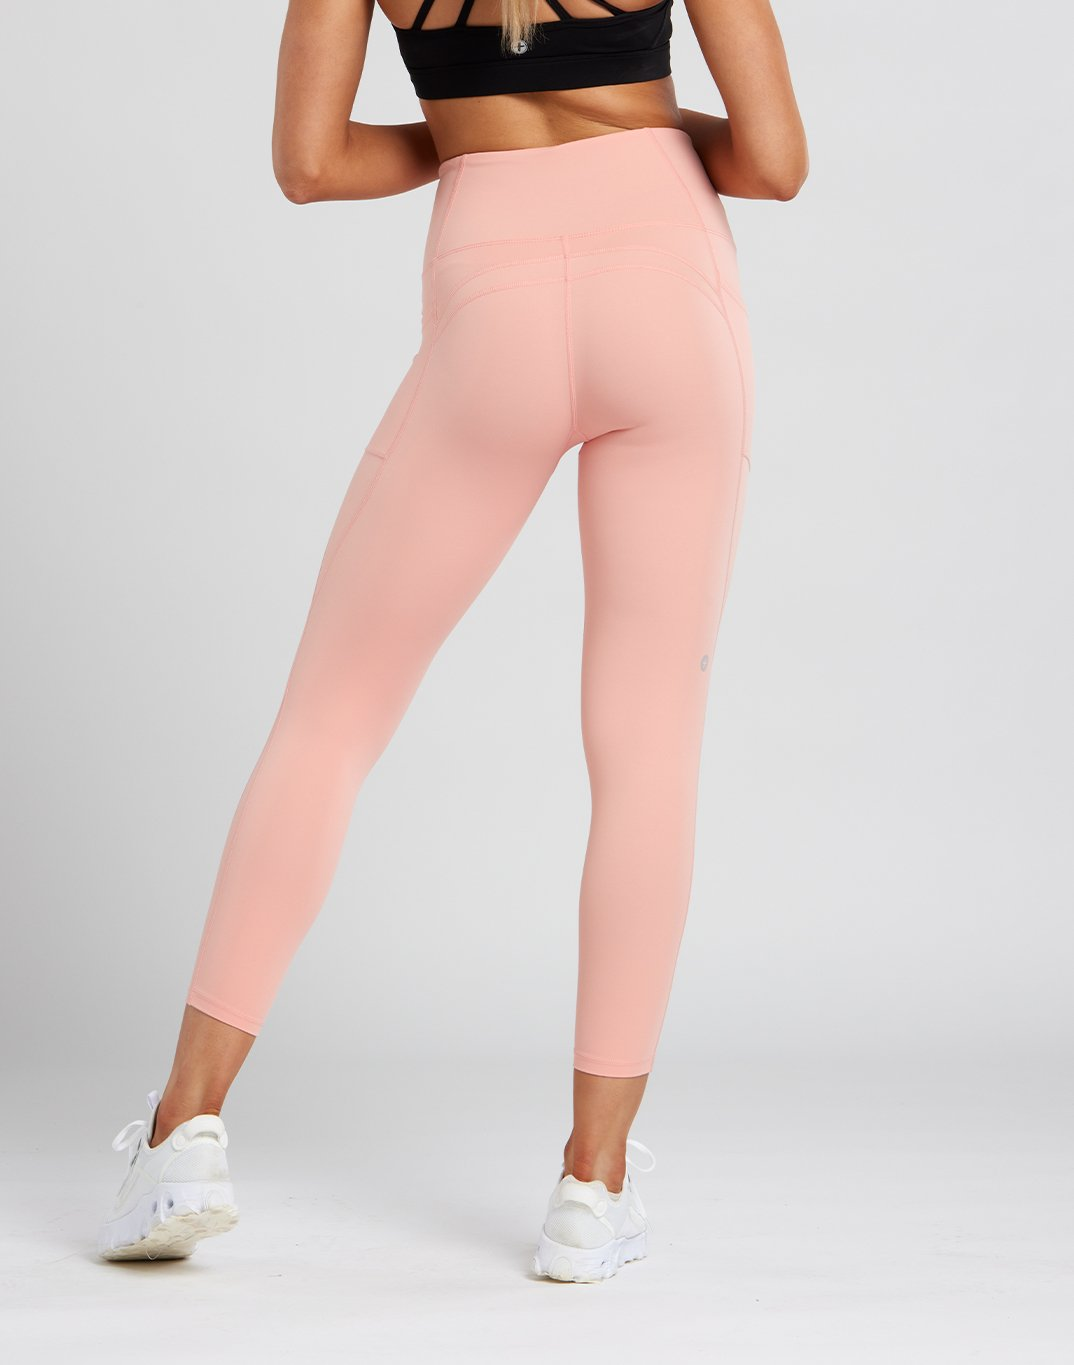 Gym Plus Coffee Leggings Womens Swift High-Rise Legging in Soft Coral Designed in Ireland